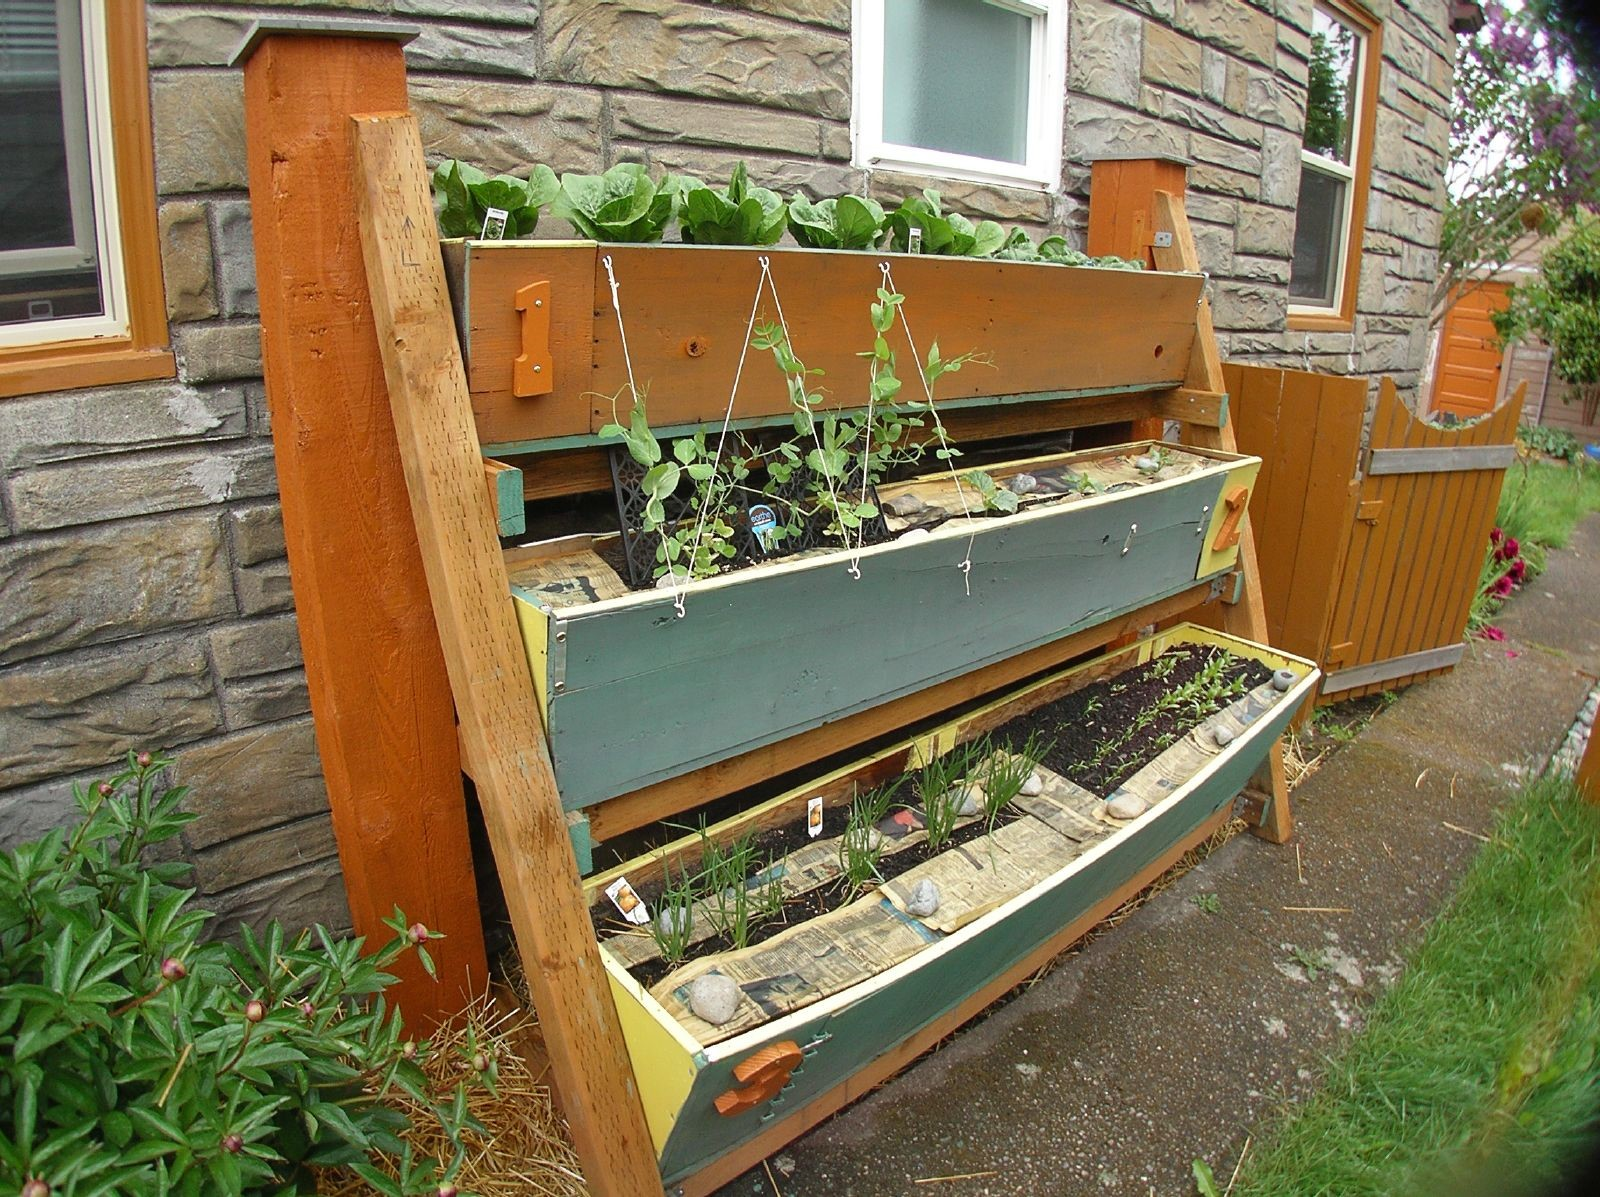 Small space gardening 20 clever ideas to grow in a Savvy home and garden